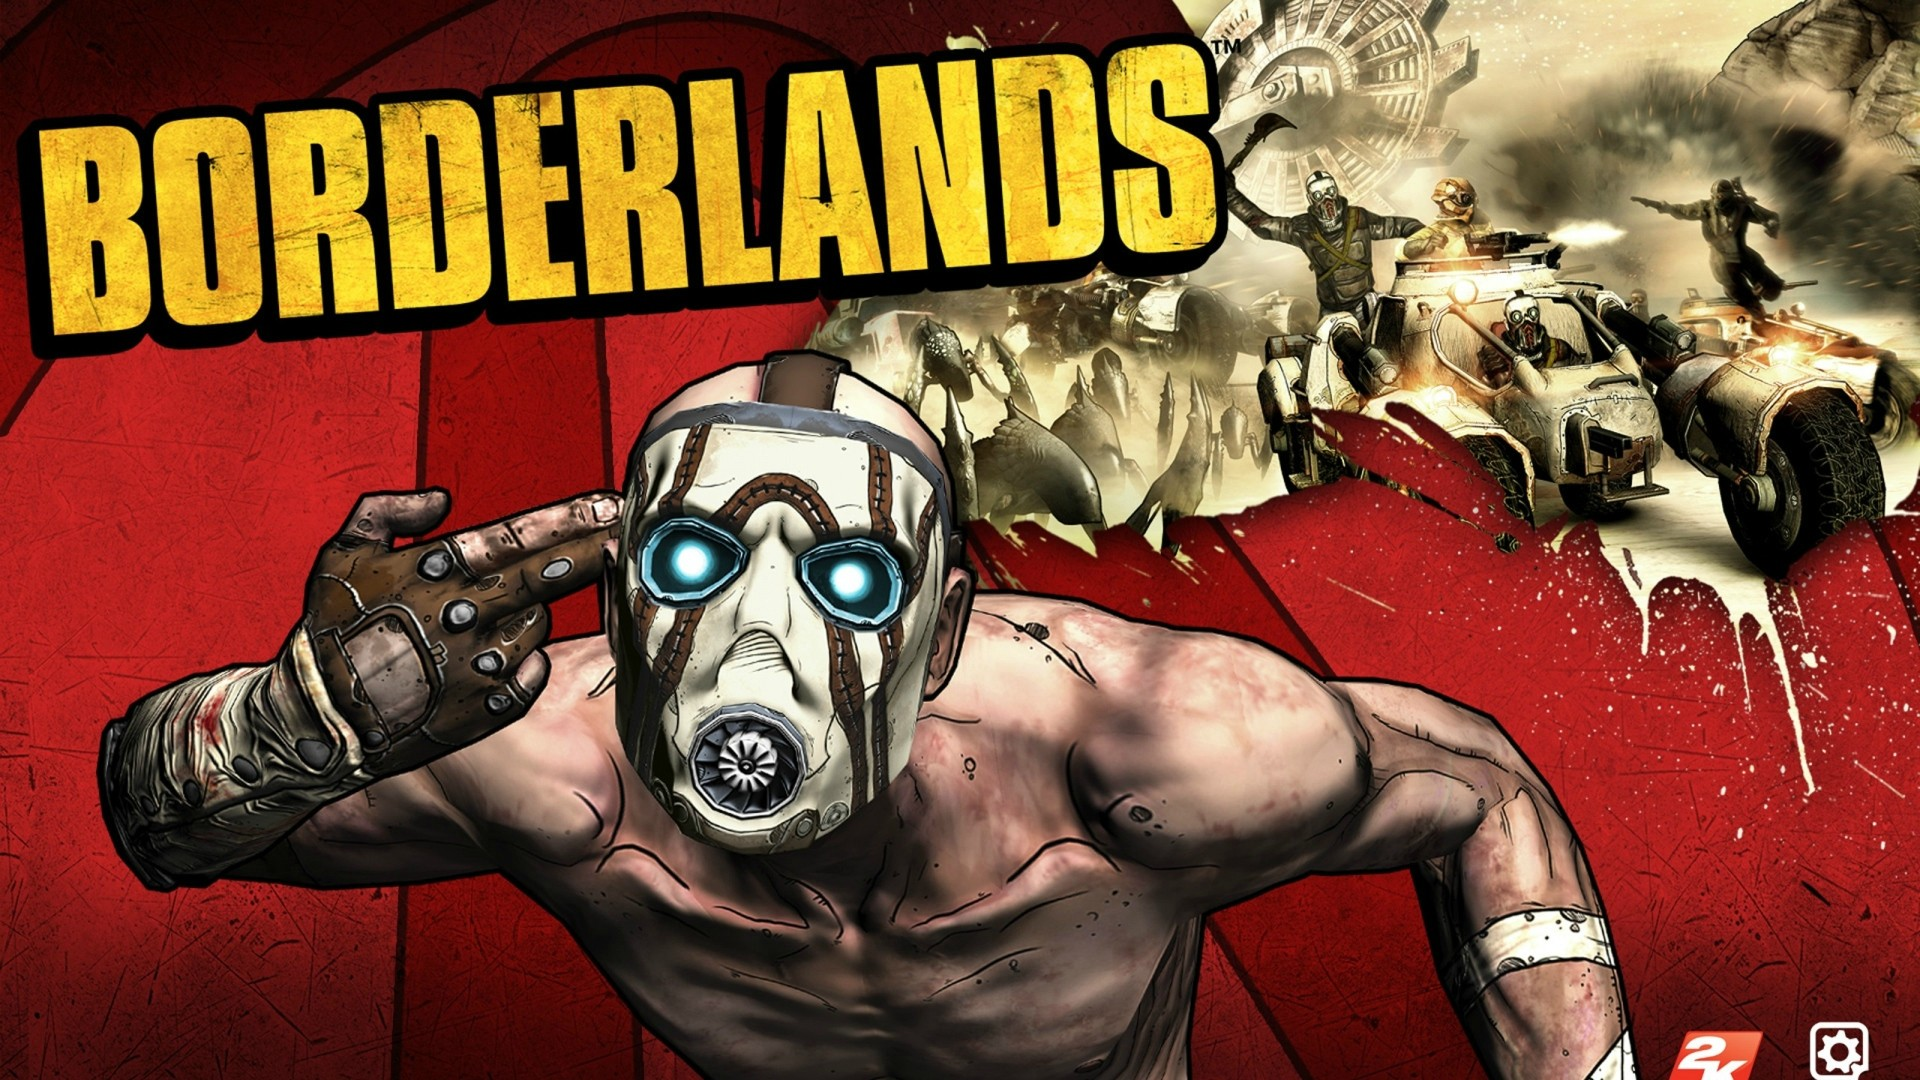 Video Game Borderlands Wallpaper Details and Download Free